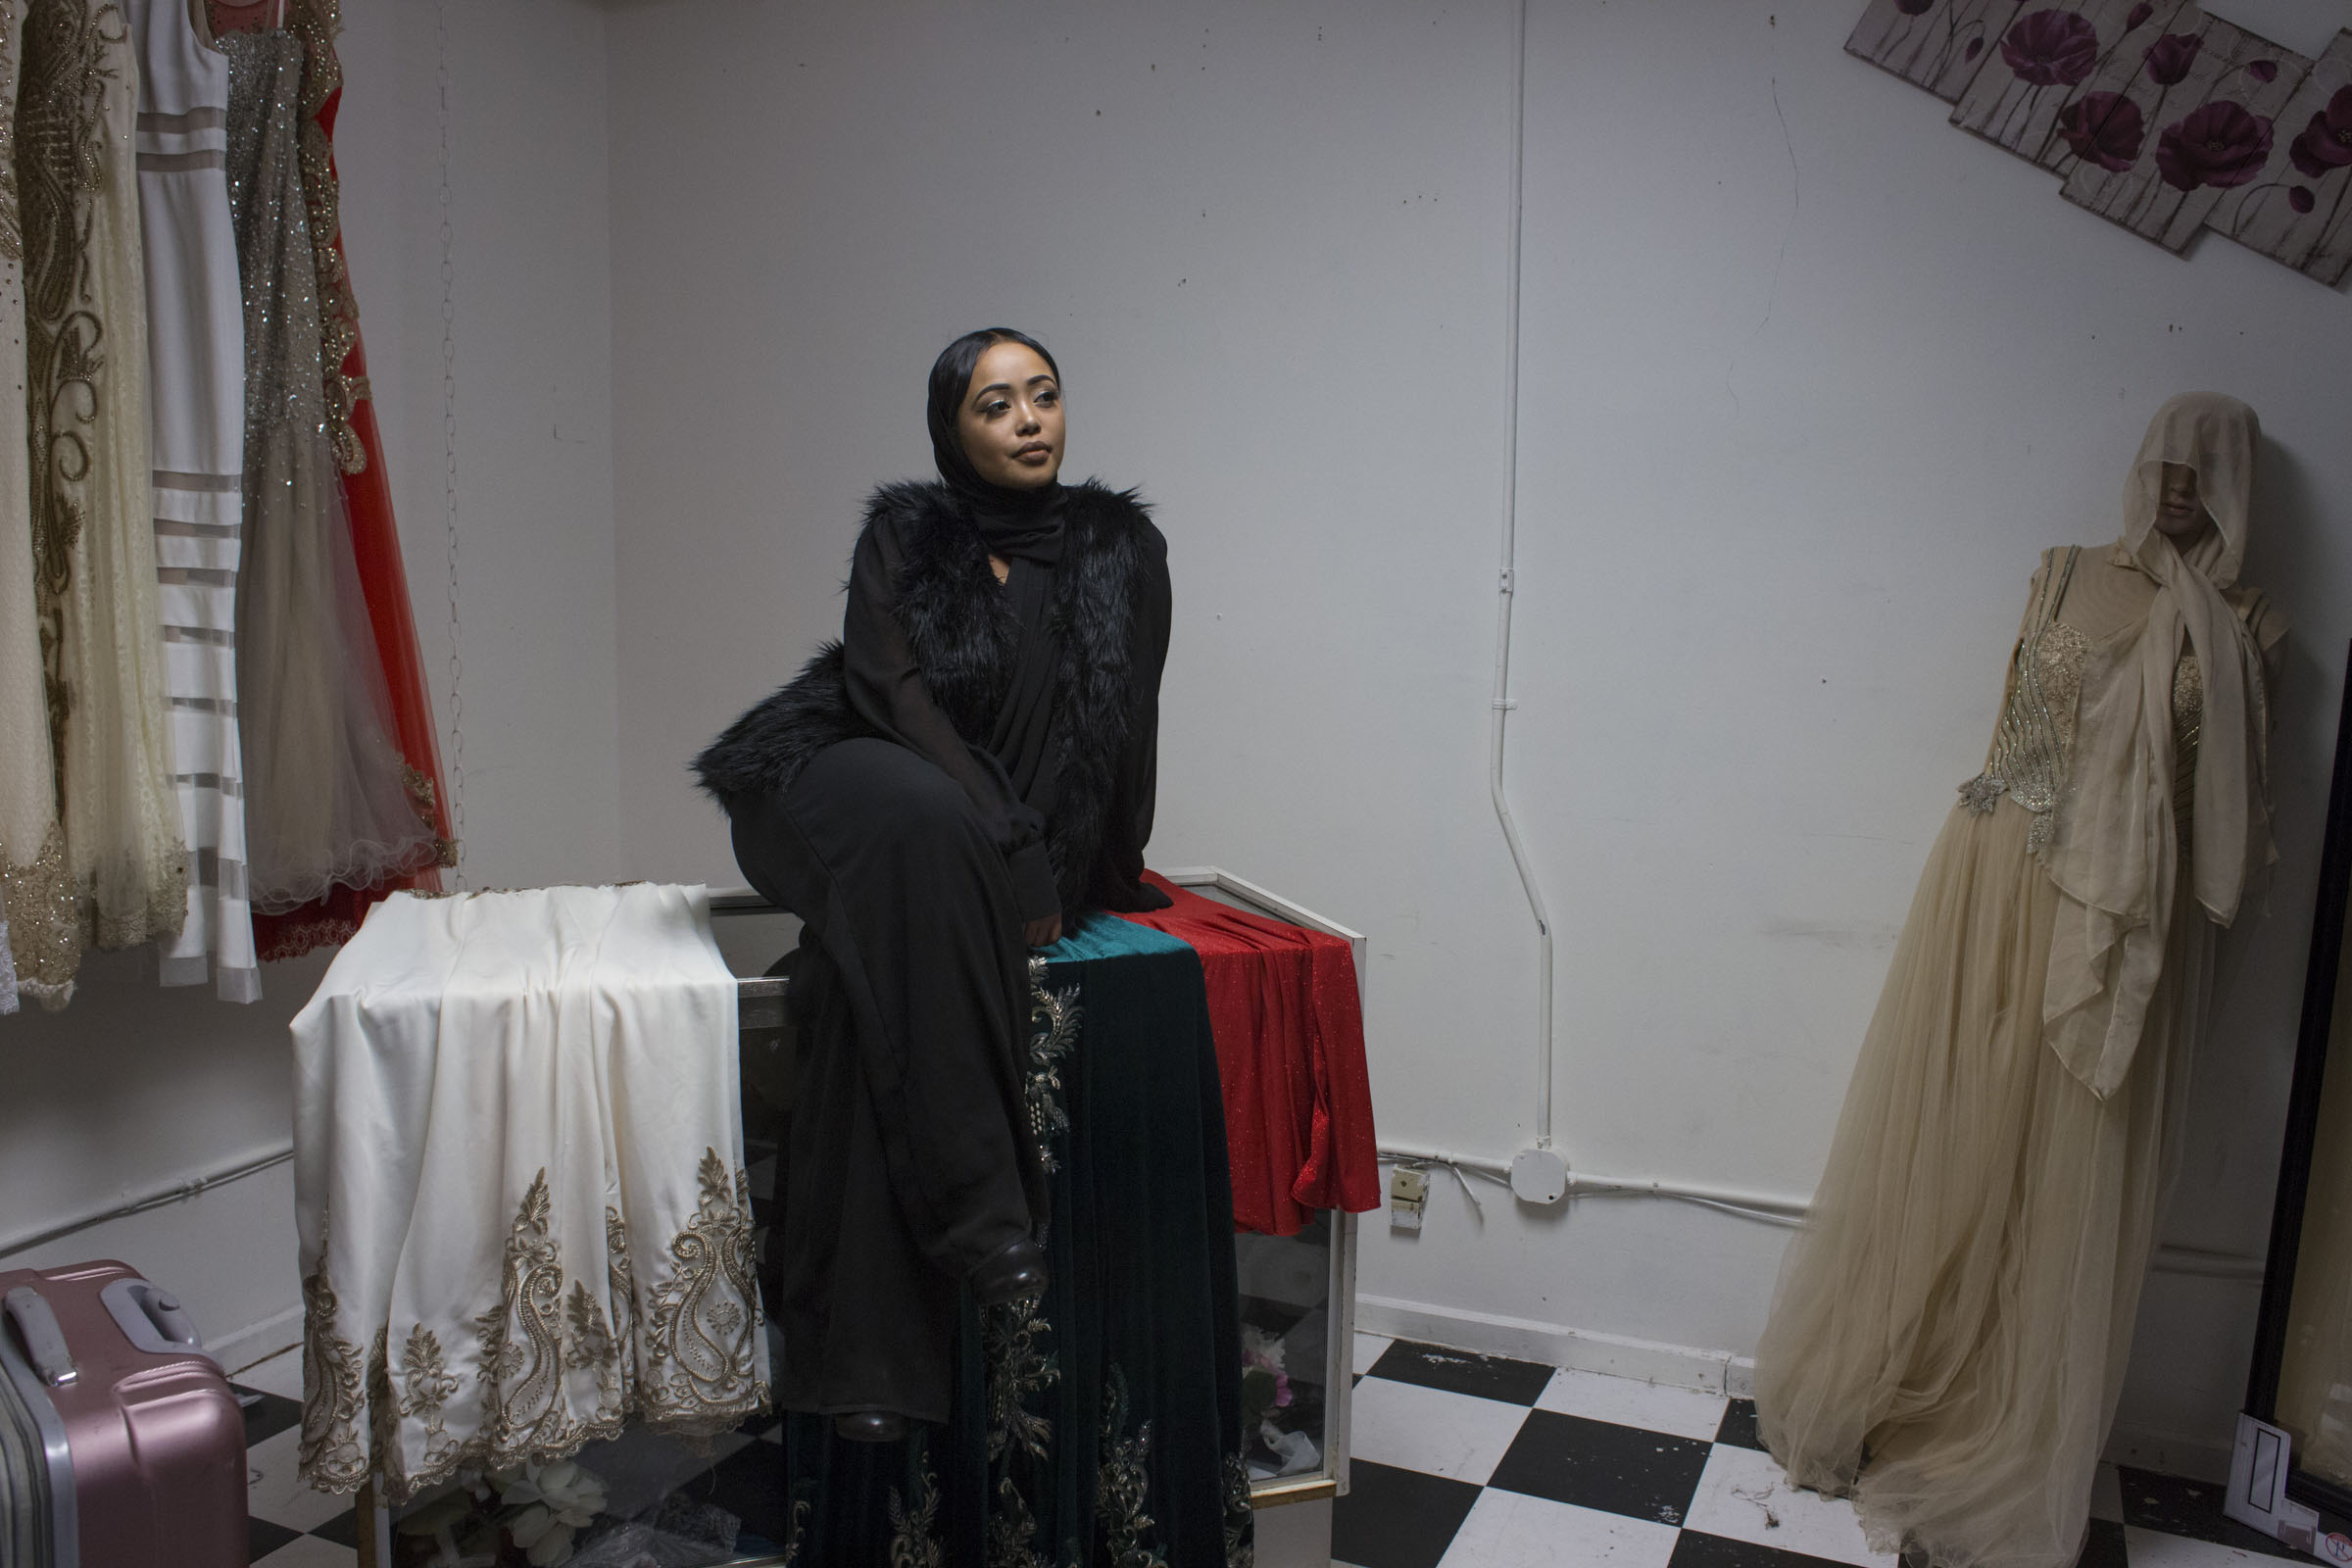 Sumaya Keynan, 24, in her small shop within her grandparents' mall in Cedar-Riverside, Minneapolis, Minn., on Wednesday, October 11, 2017. Keynan hopes her fashion and beauty brand appeals to young Muslim women who want to be both modest and fashionable. She also hopes to appeal to all audiences of women and already has a customer base in Europe. (Photo by Brittany Greeson)